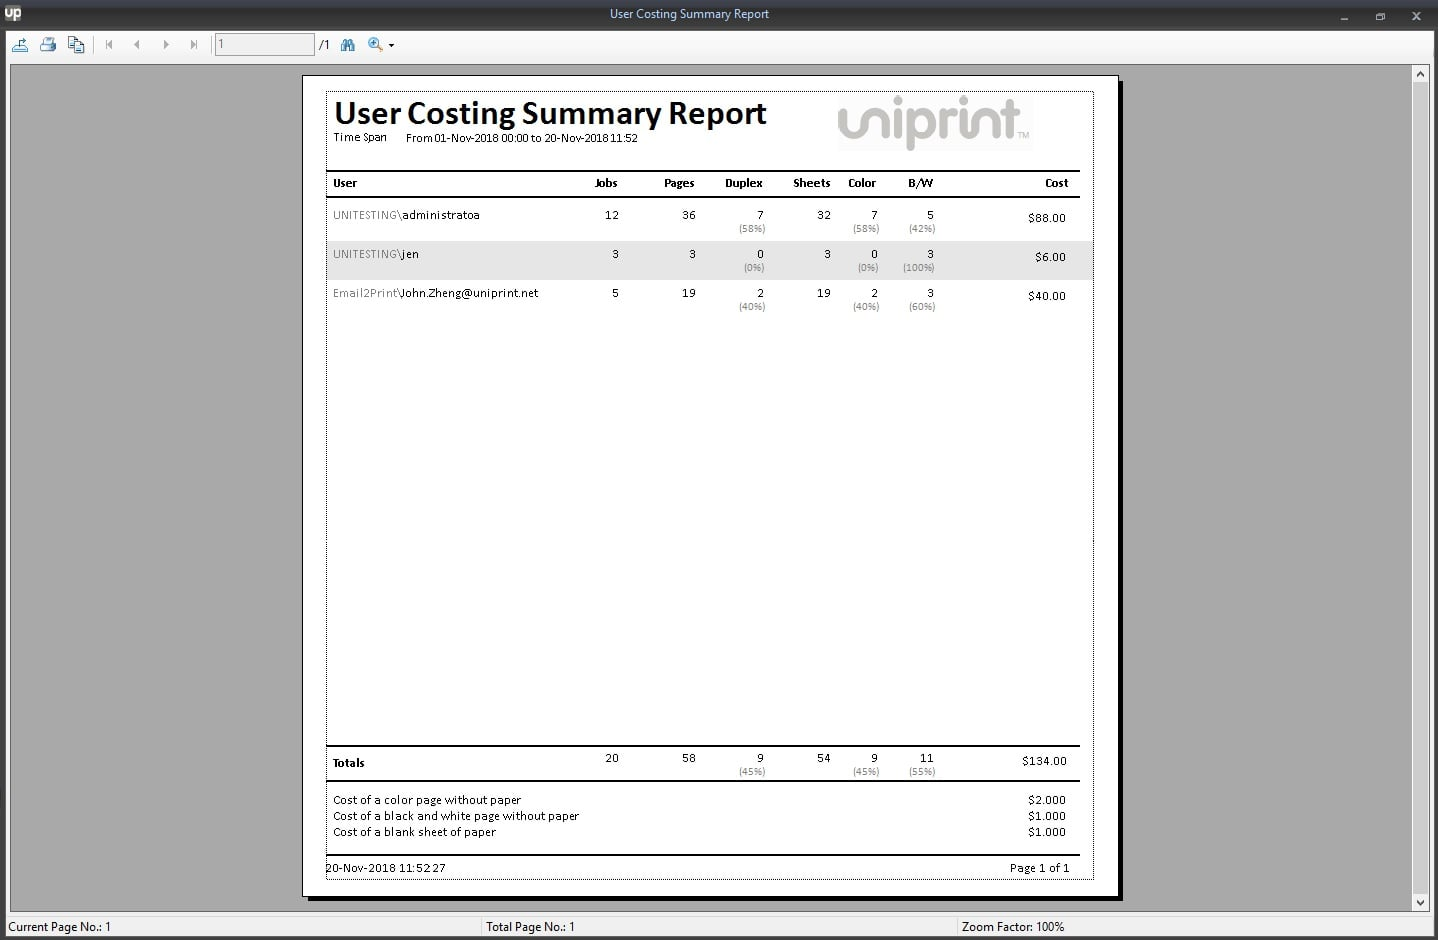 UP Print tracker tool - Print Statistics User Cost Summary Report